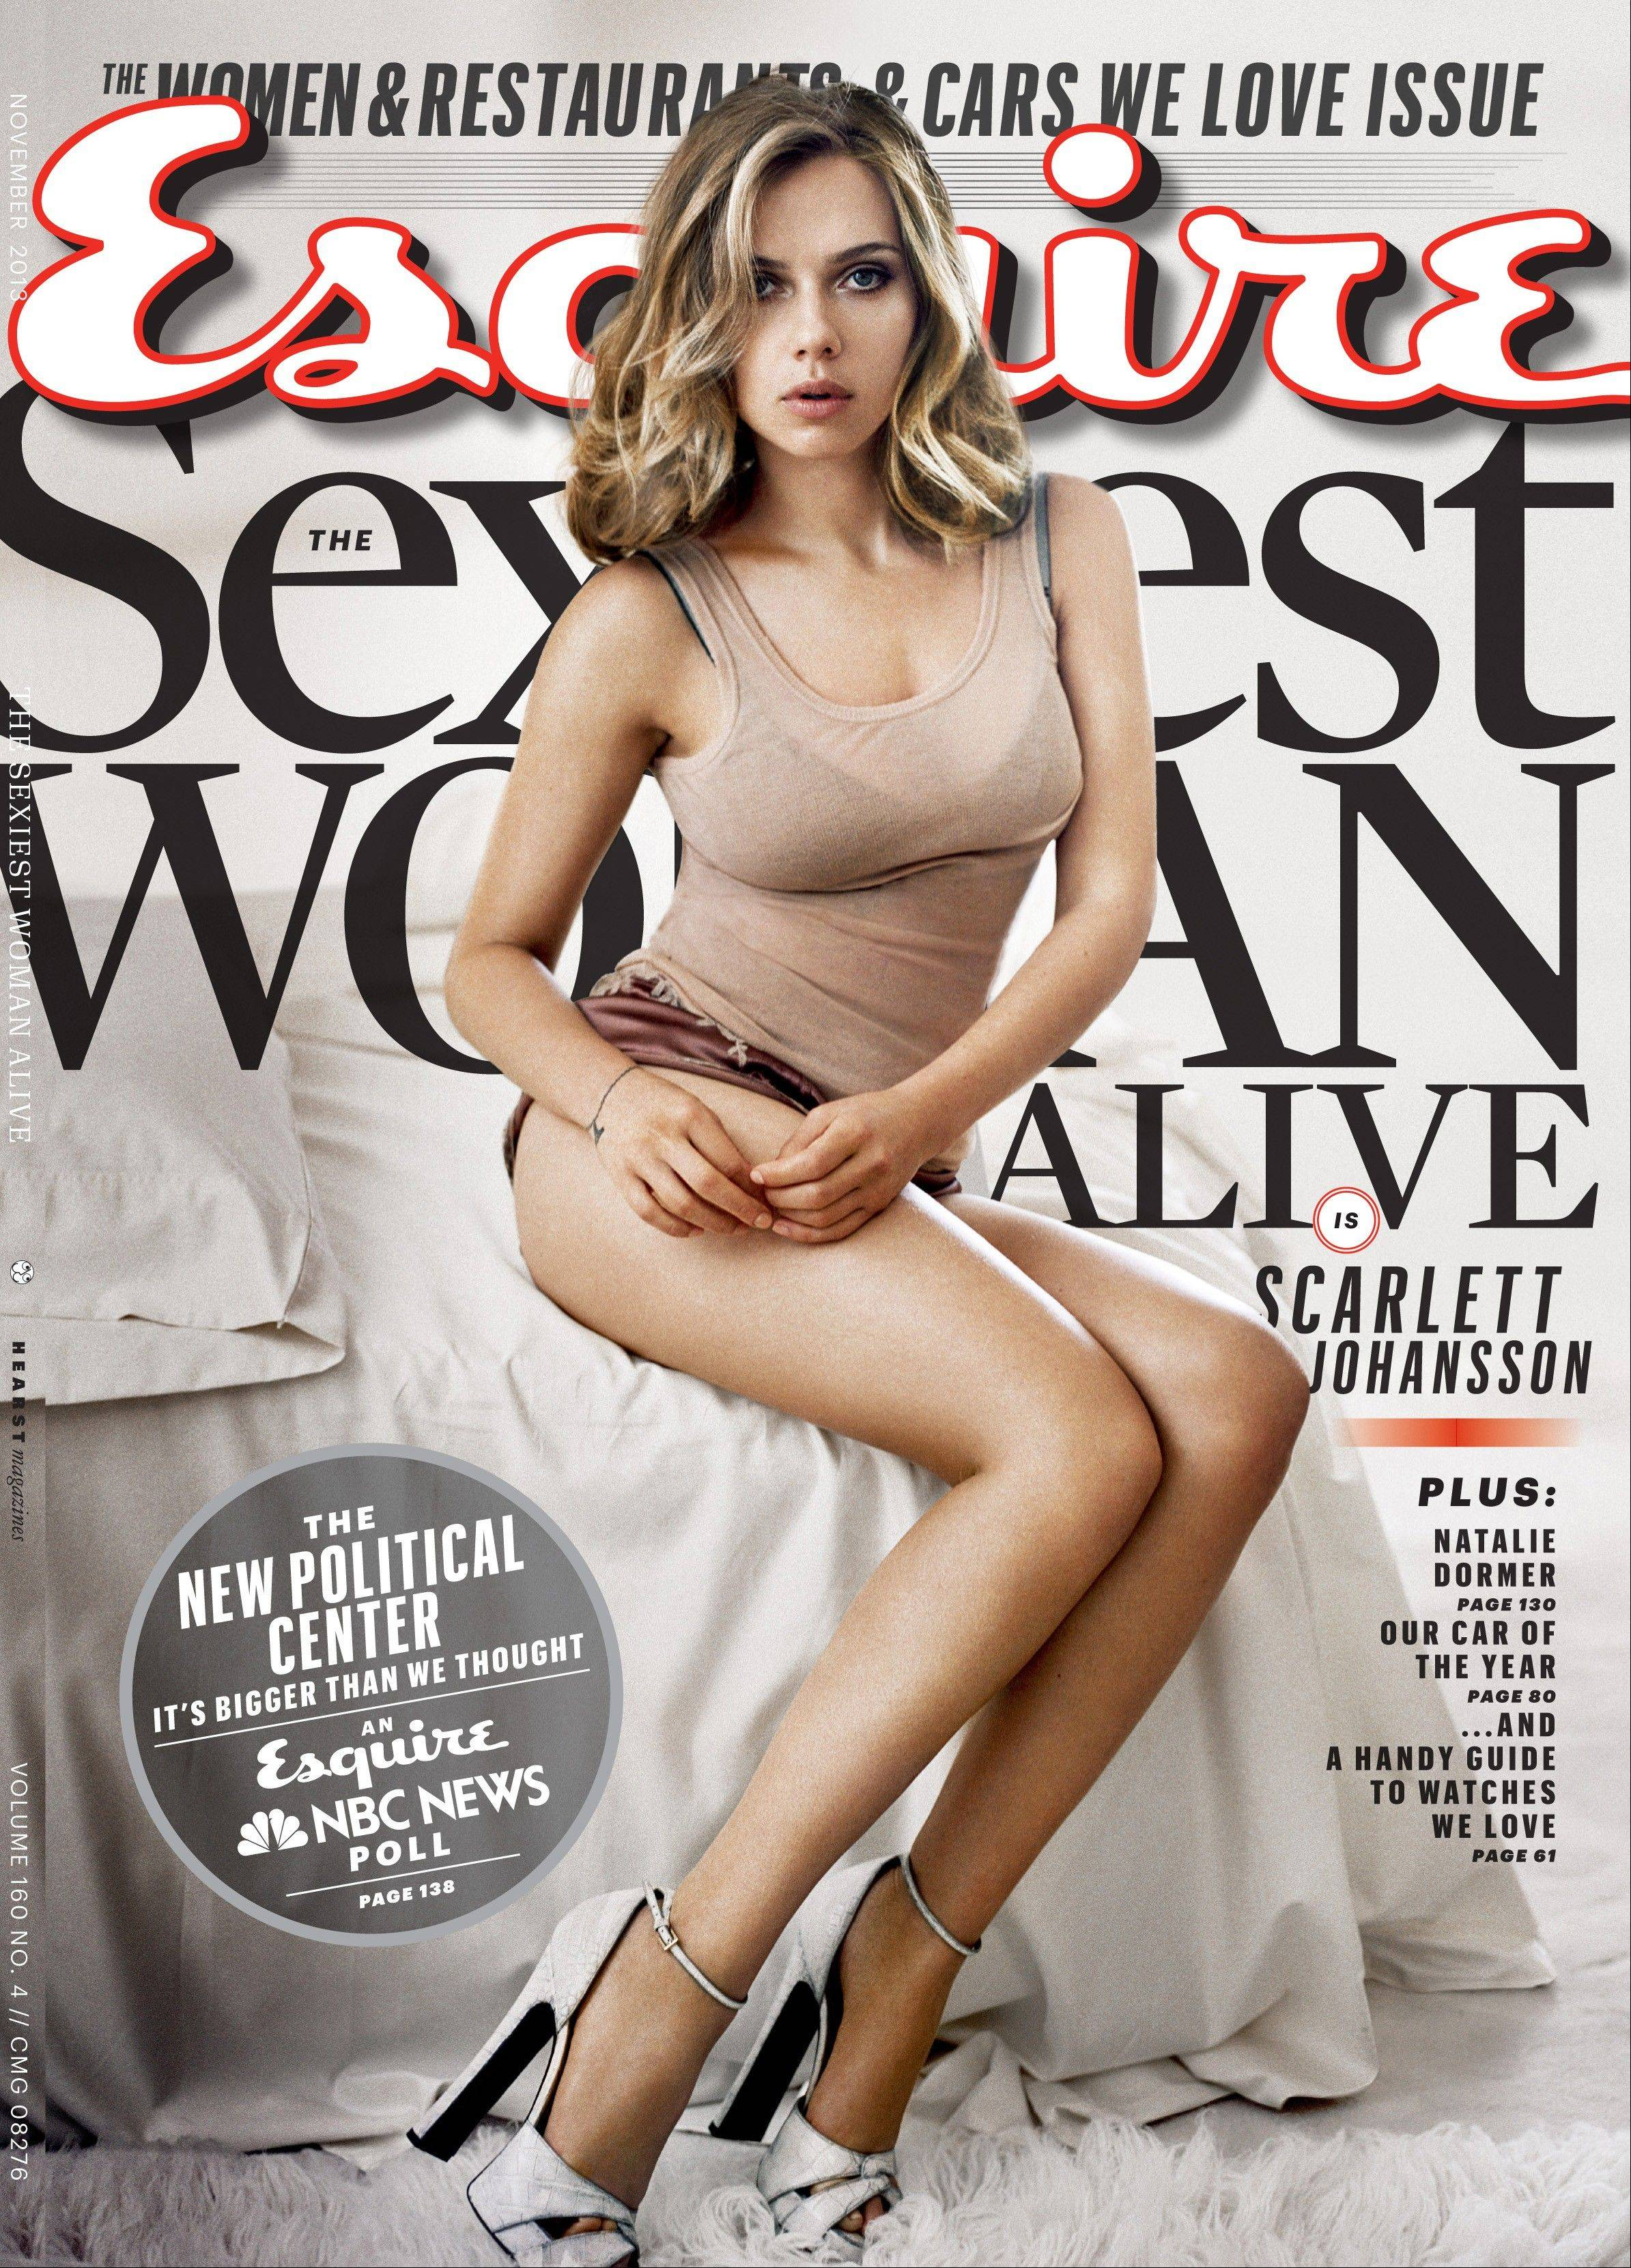 Scarlett Johansson has earned the title of Esquire magazine's sexiest woman alive, for a second time. She also won in 2006.